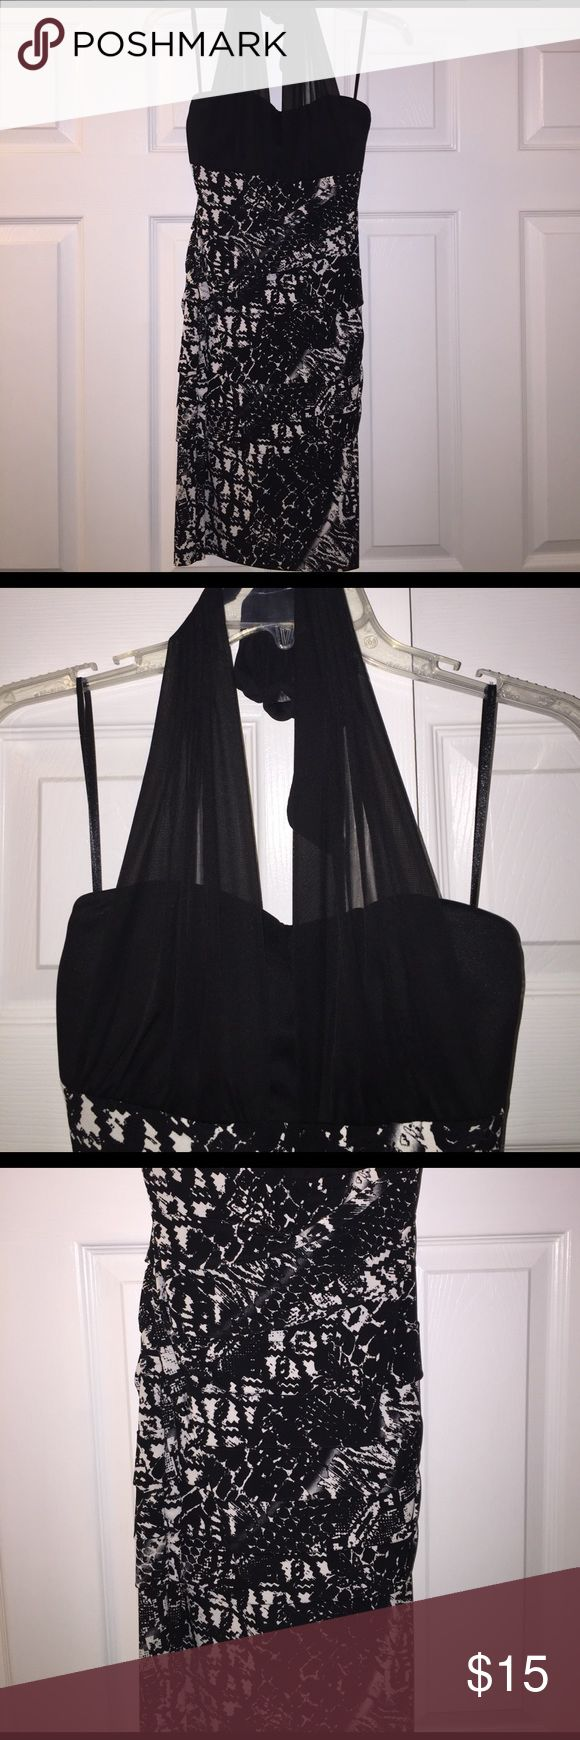 Black and white mini dress Black and white bottom with black top, dress also has sheer halter to go over the front and ties around next. Great dress for a girls night out! Excellent condition! Carole Little Dresses Mini